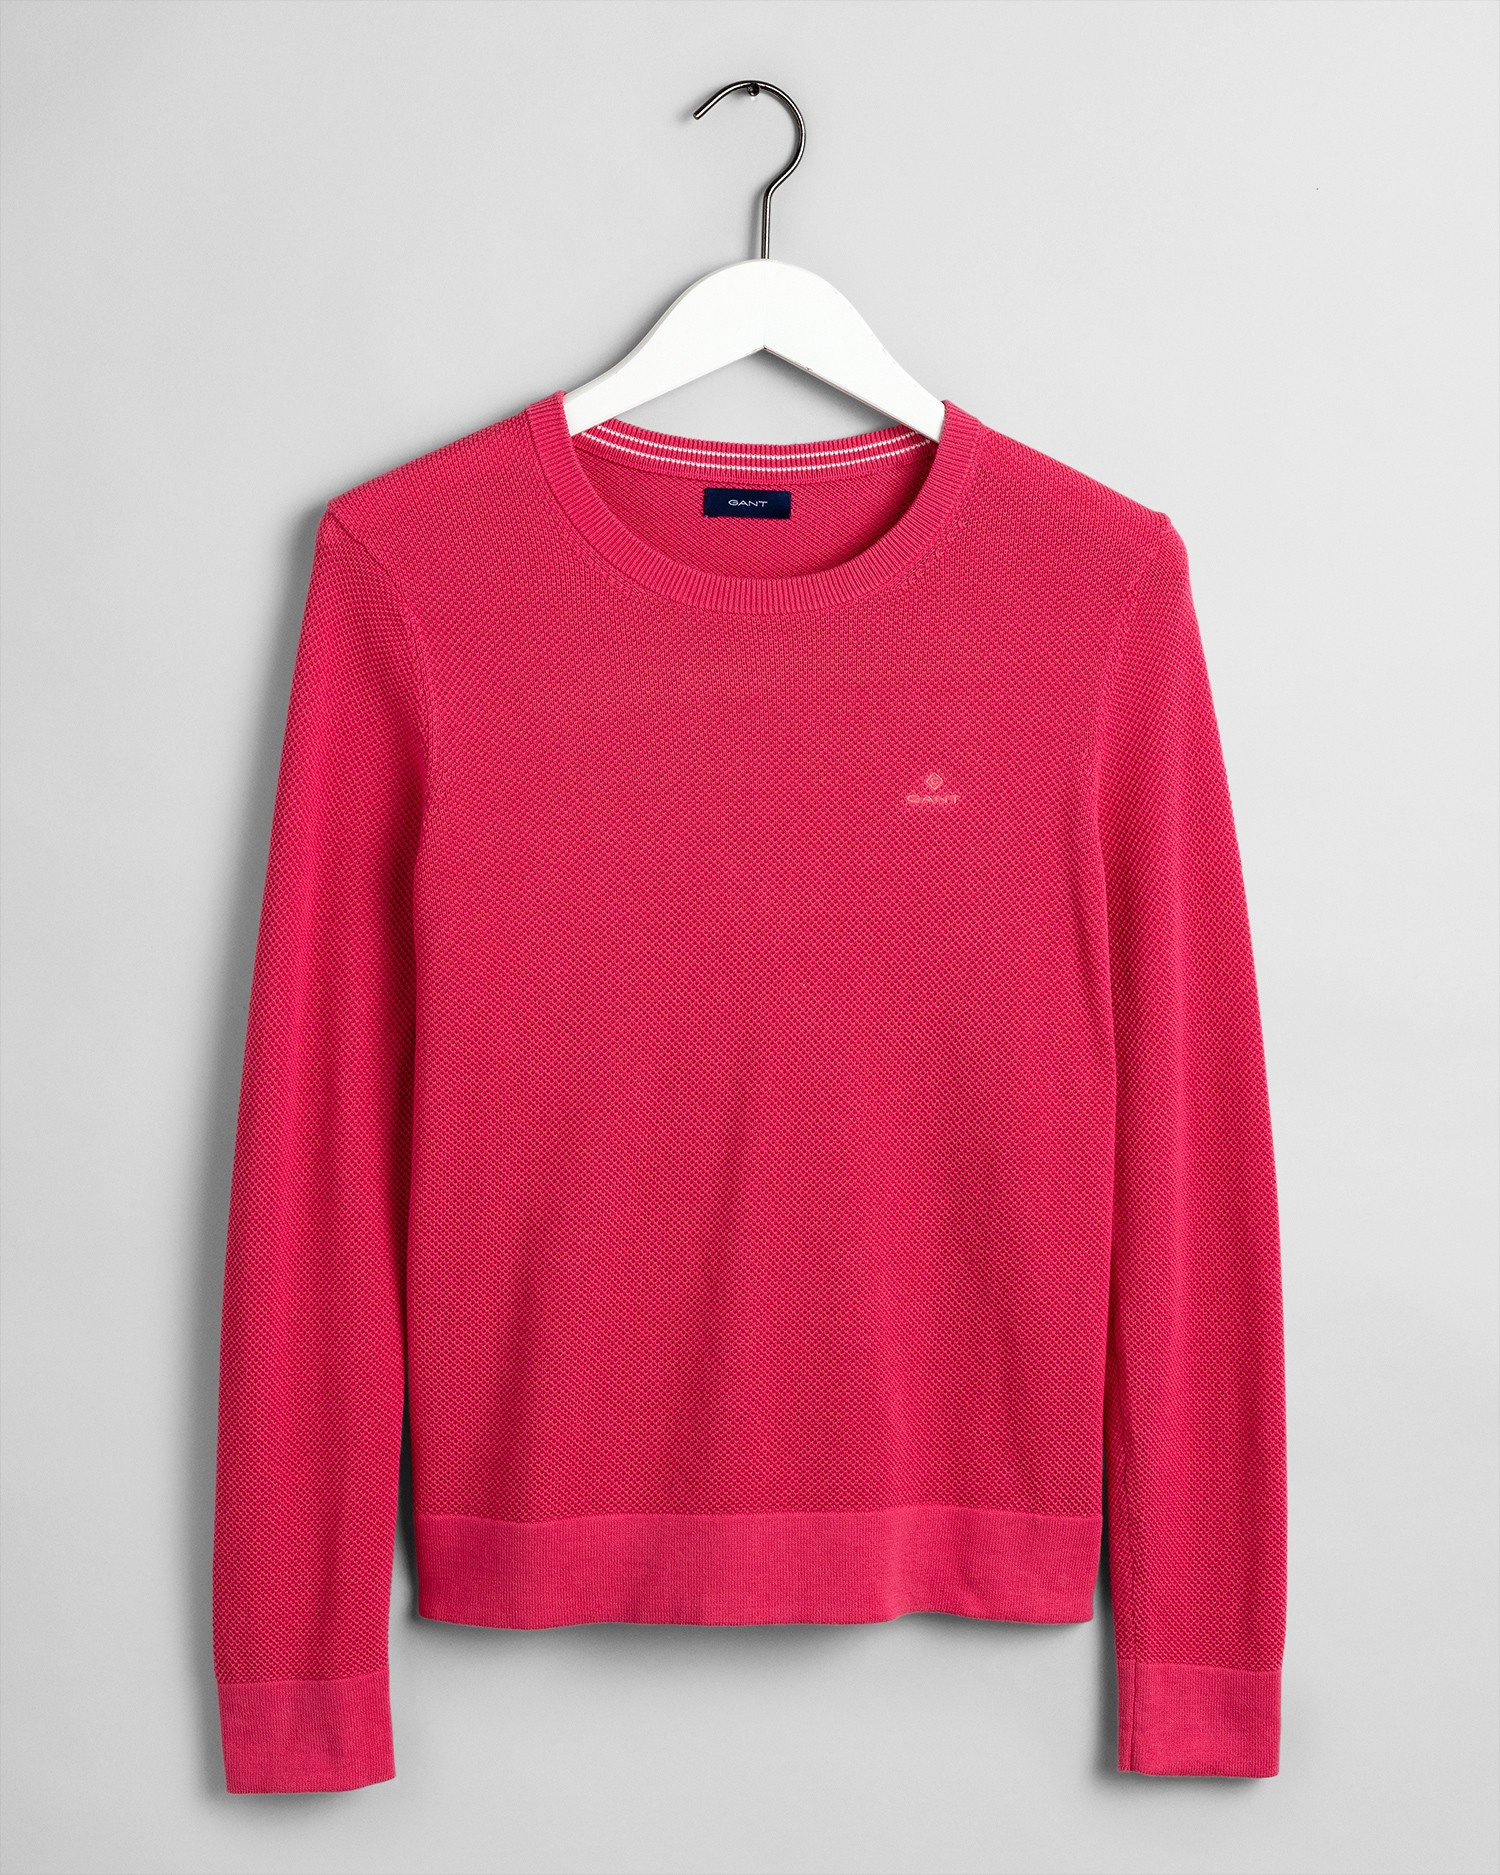 GANT Women's Cotton Pique Sweater - 4800504